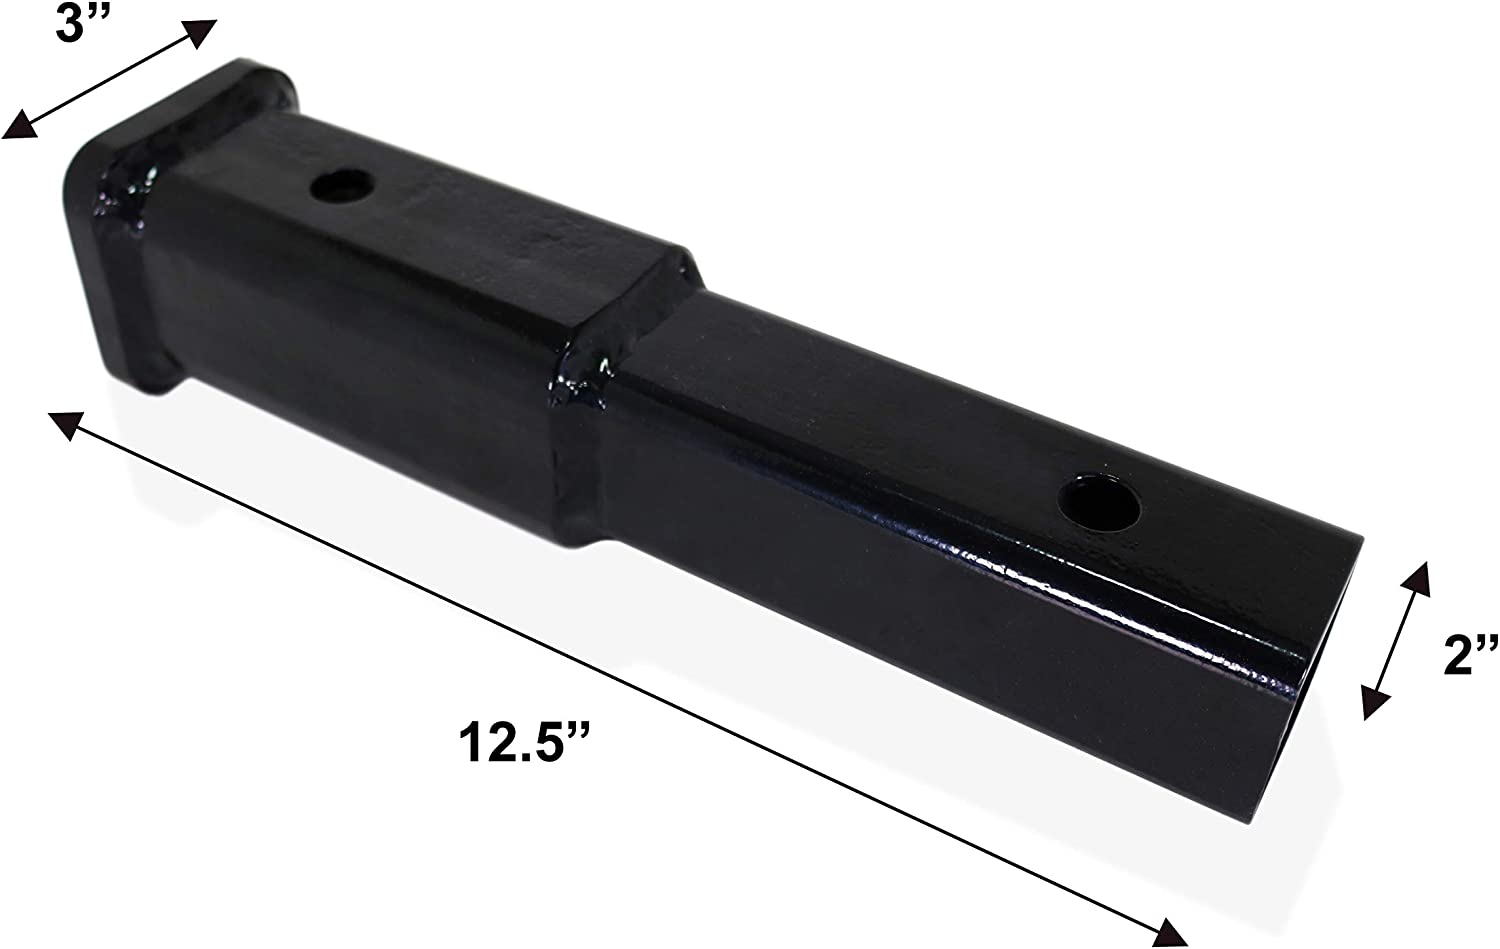 8 Inches Long for 2 Inch Tow Hitch Receiver with 5//8 Inch Hitch Pin and Ball Hitch Cover GarMills Hitch Extension